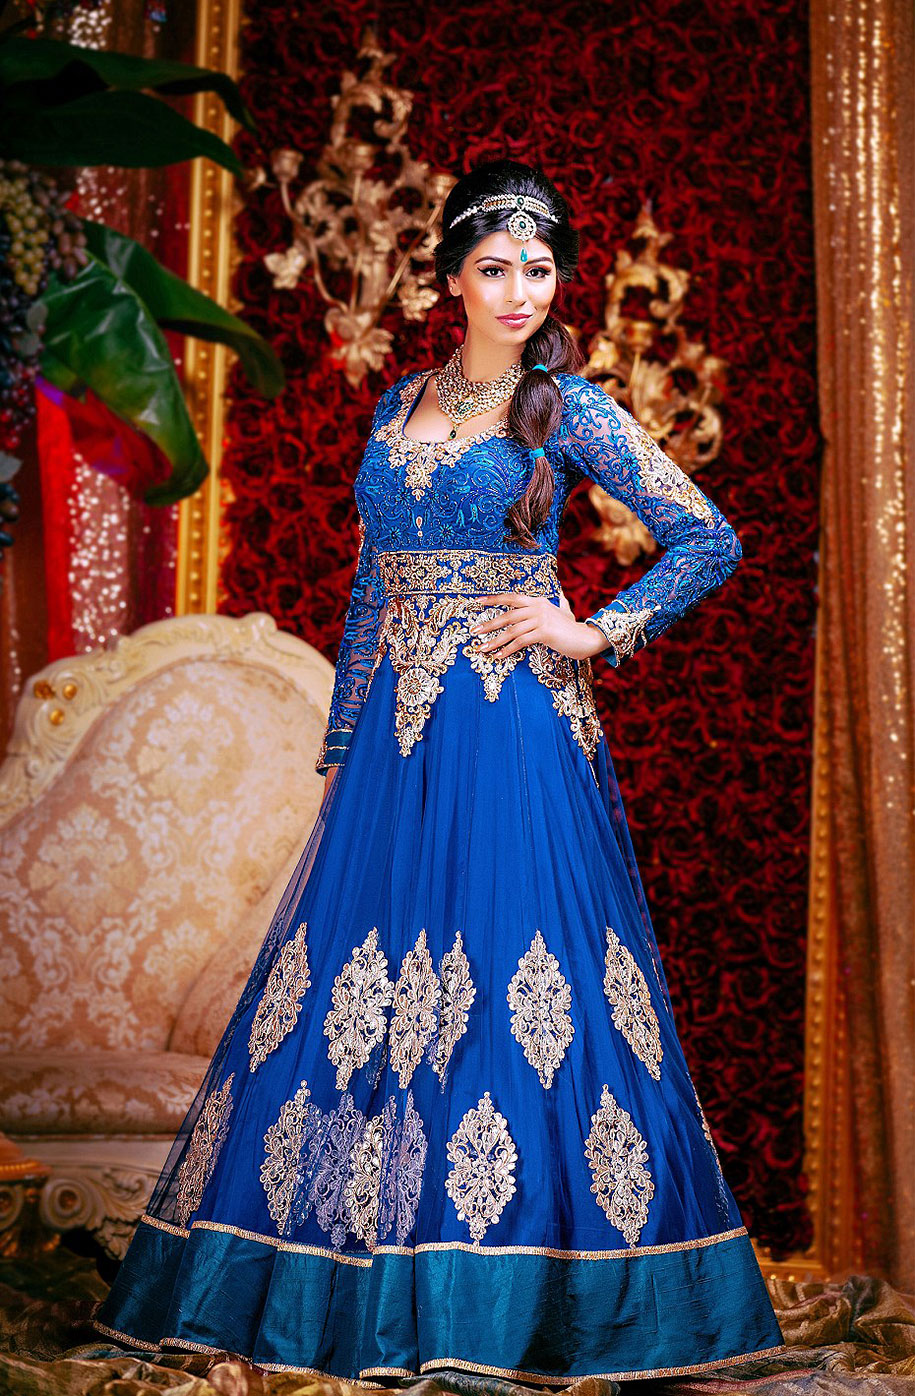 disney-princess-bride-india-wedding-photography-amrit-grewal-6